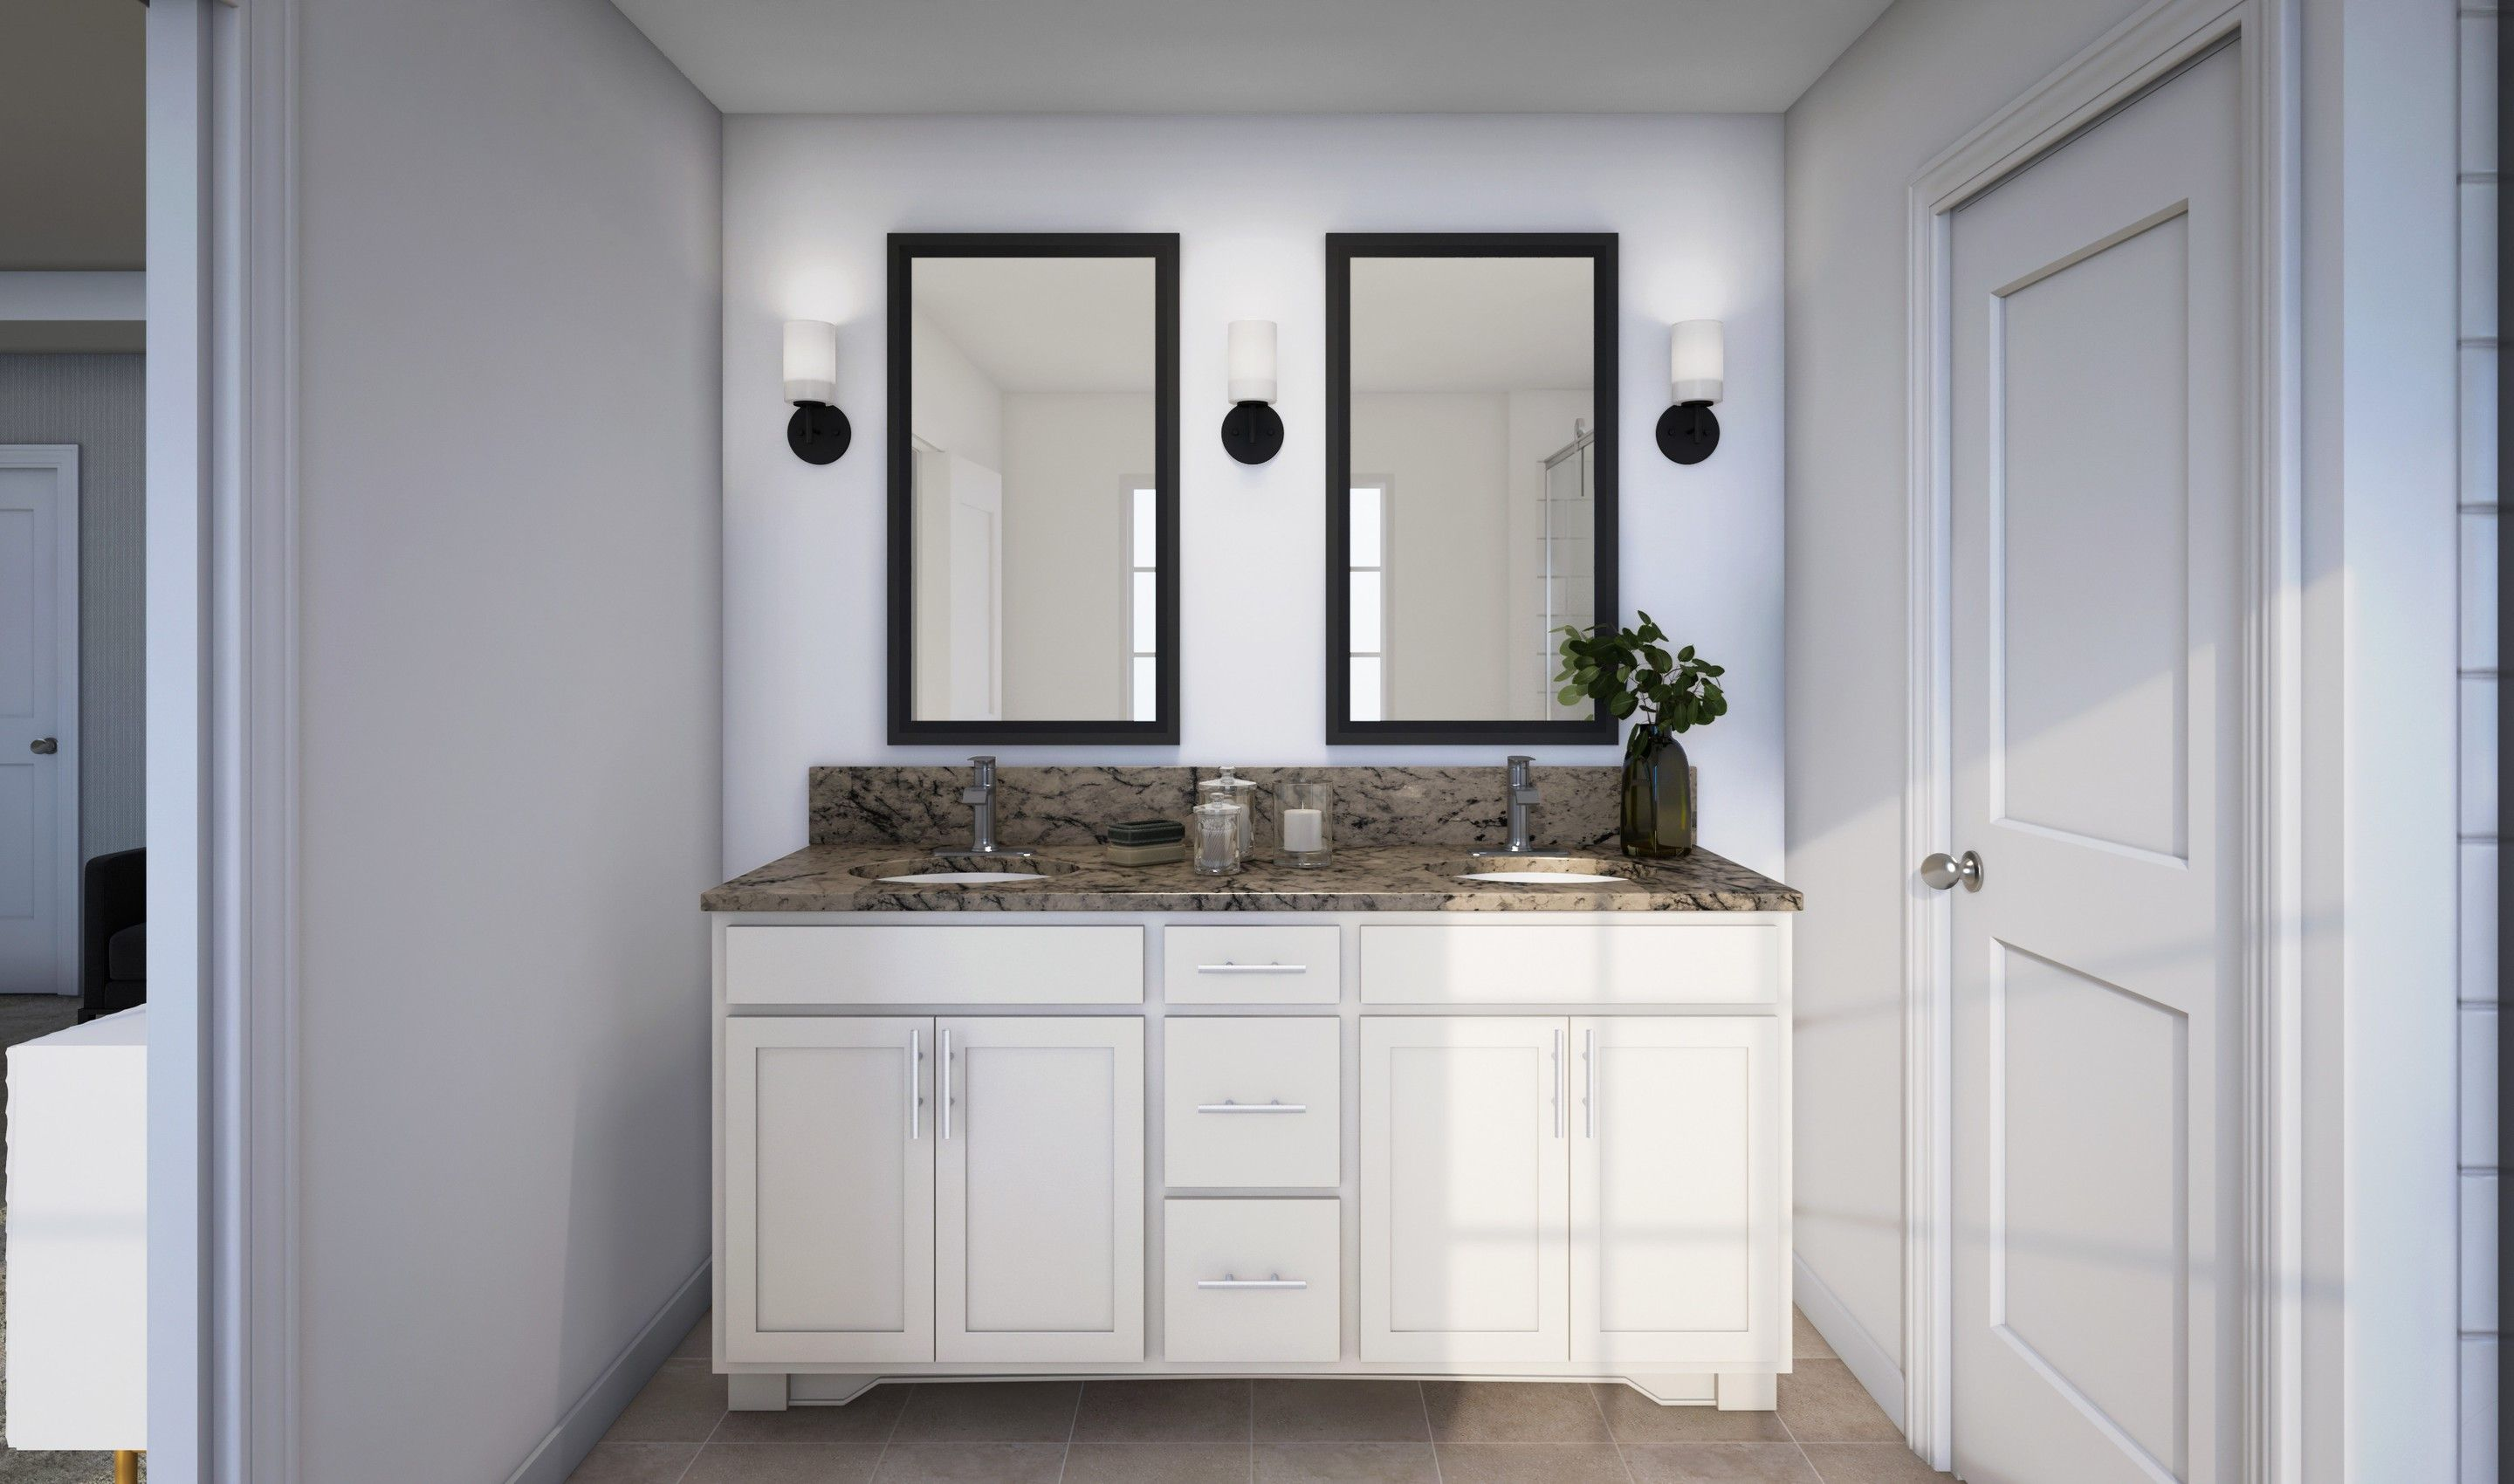 Bathroom featured in the Claremont II By K. Hovnanian® Homes in Middlesex County, NJ